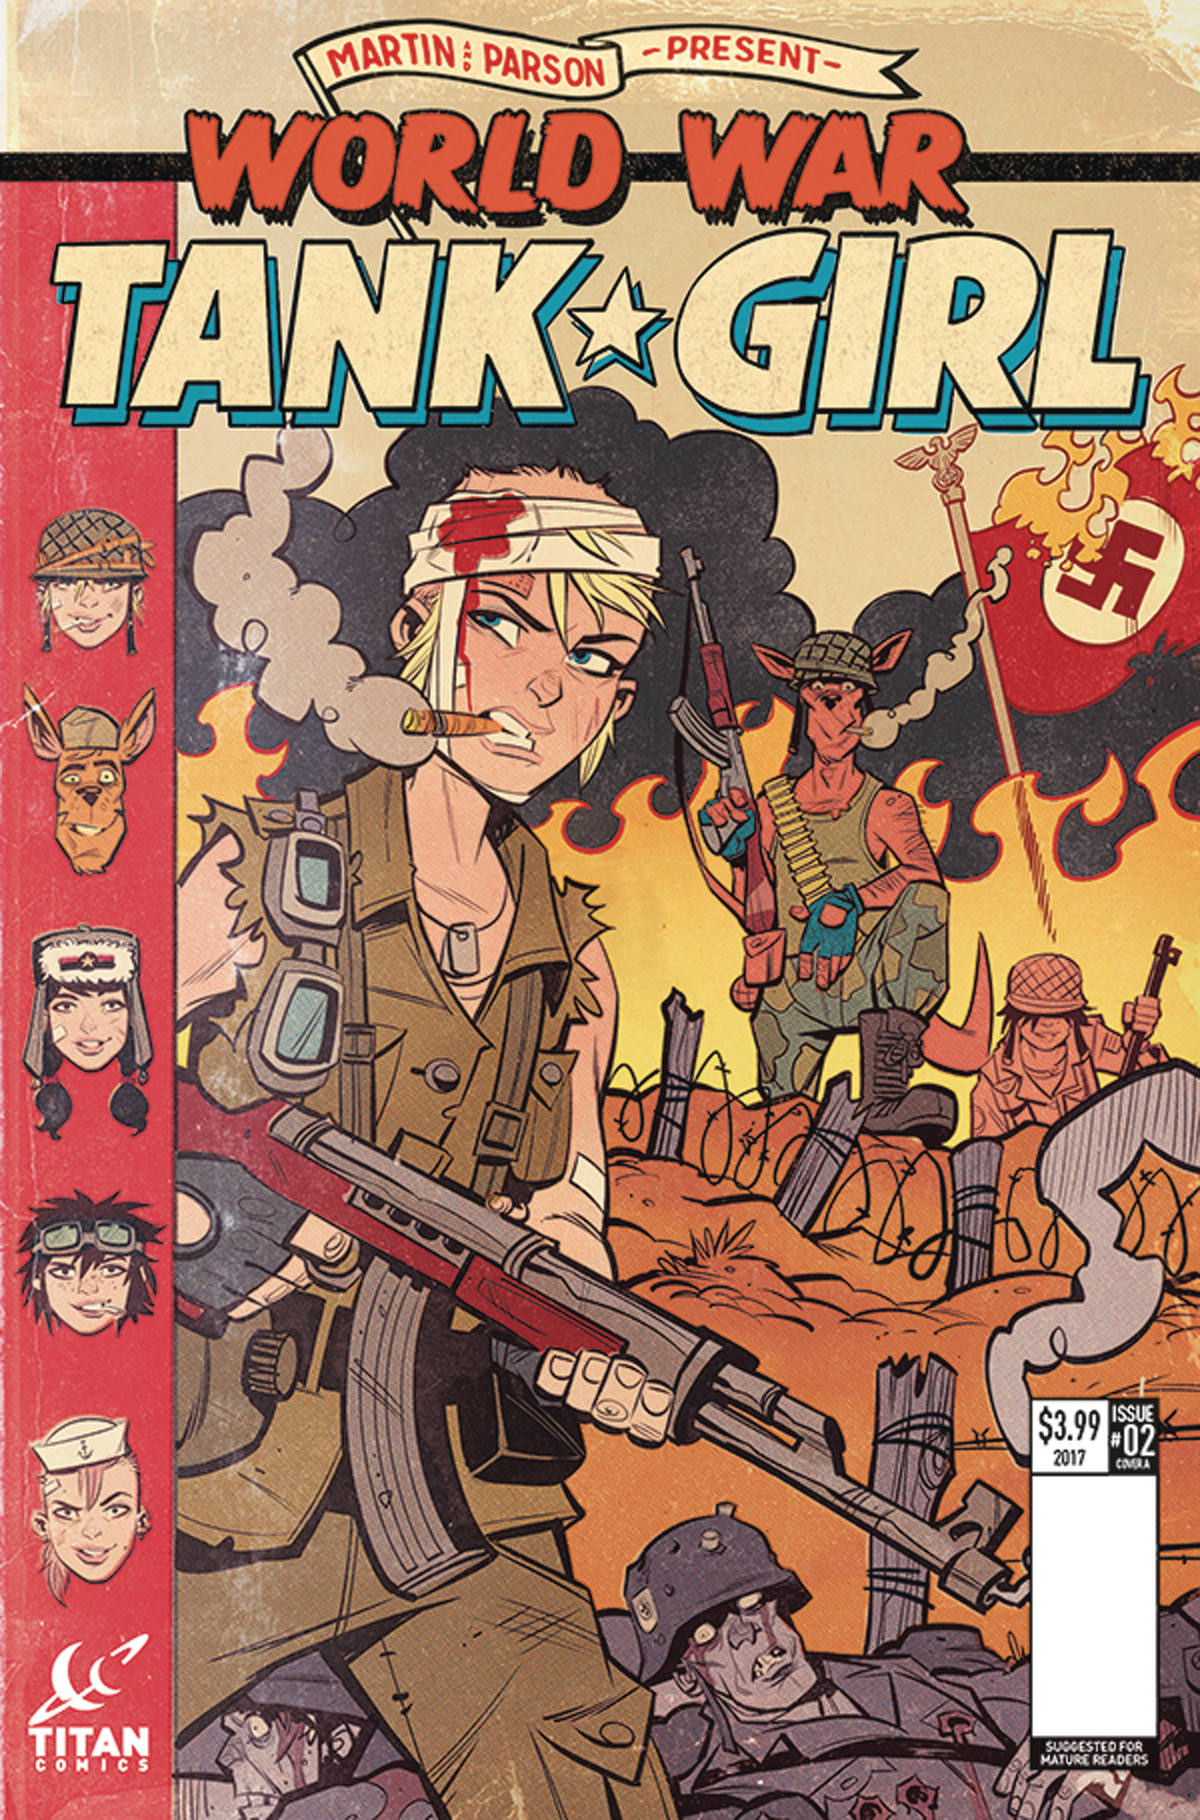 TANK GIRL WORLD WAR TANK GIRL #2 (OF 4) CVR A PARSON